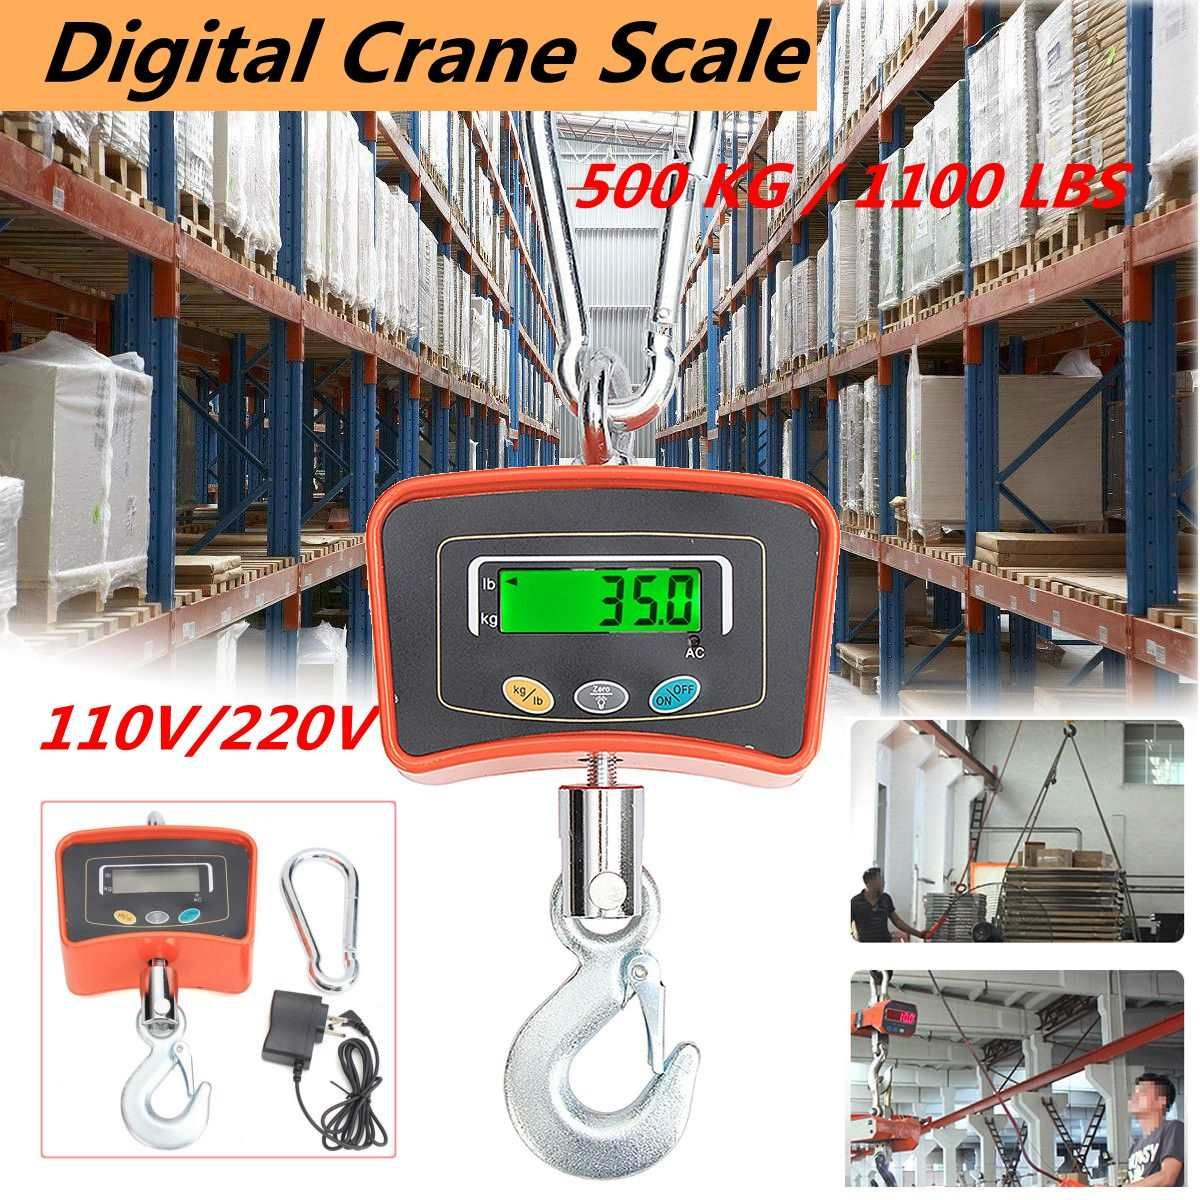 500KG/1100 LBS Digital Crane Scale 110V/220V Heavy Duty Industrial Hanging Scale Electronic Weighing Balance Tools